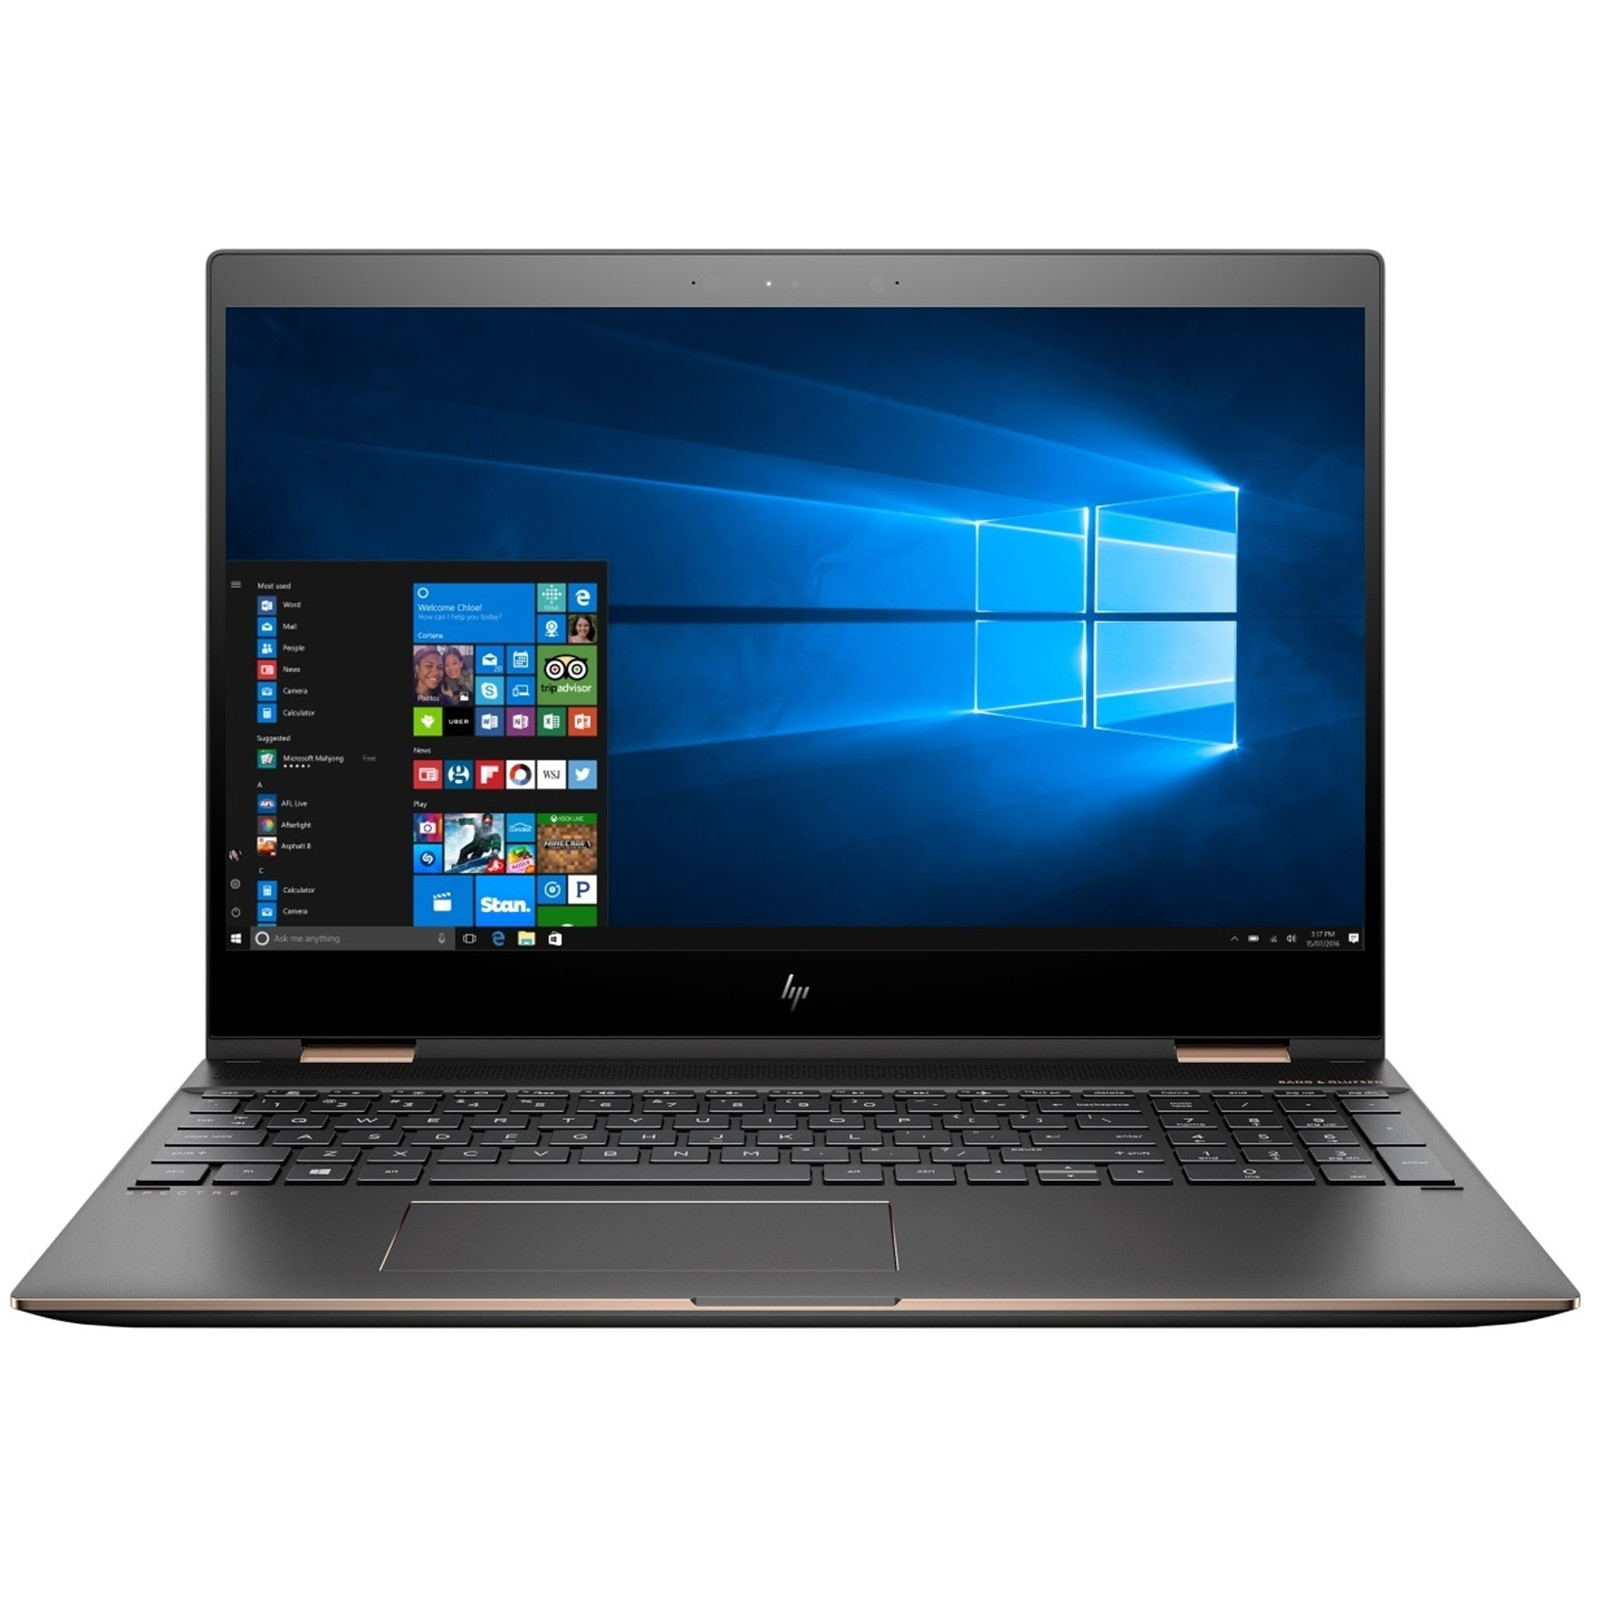 HP New Spectre x360 Top Entertainment Ultrabook 15.6